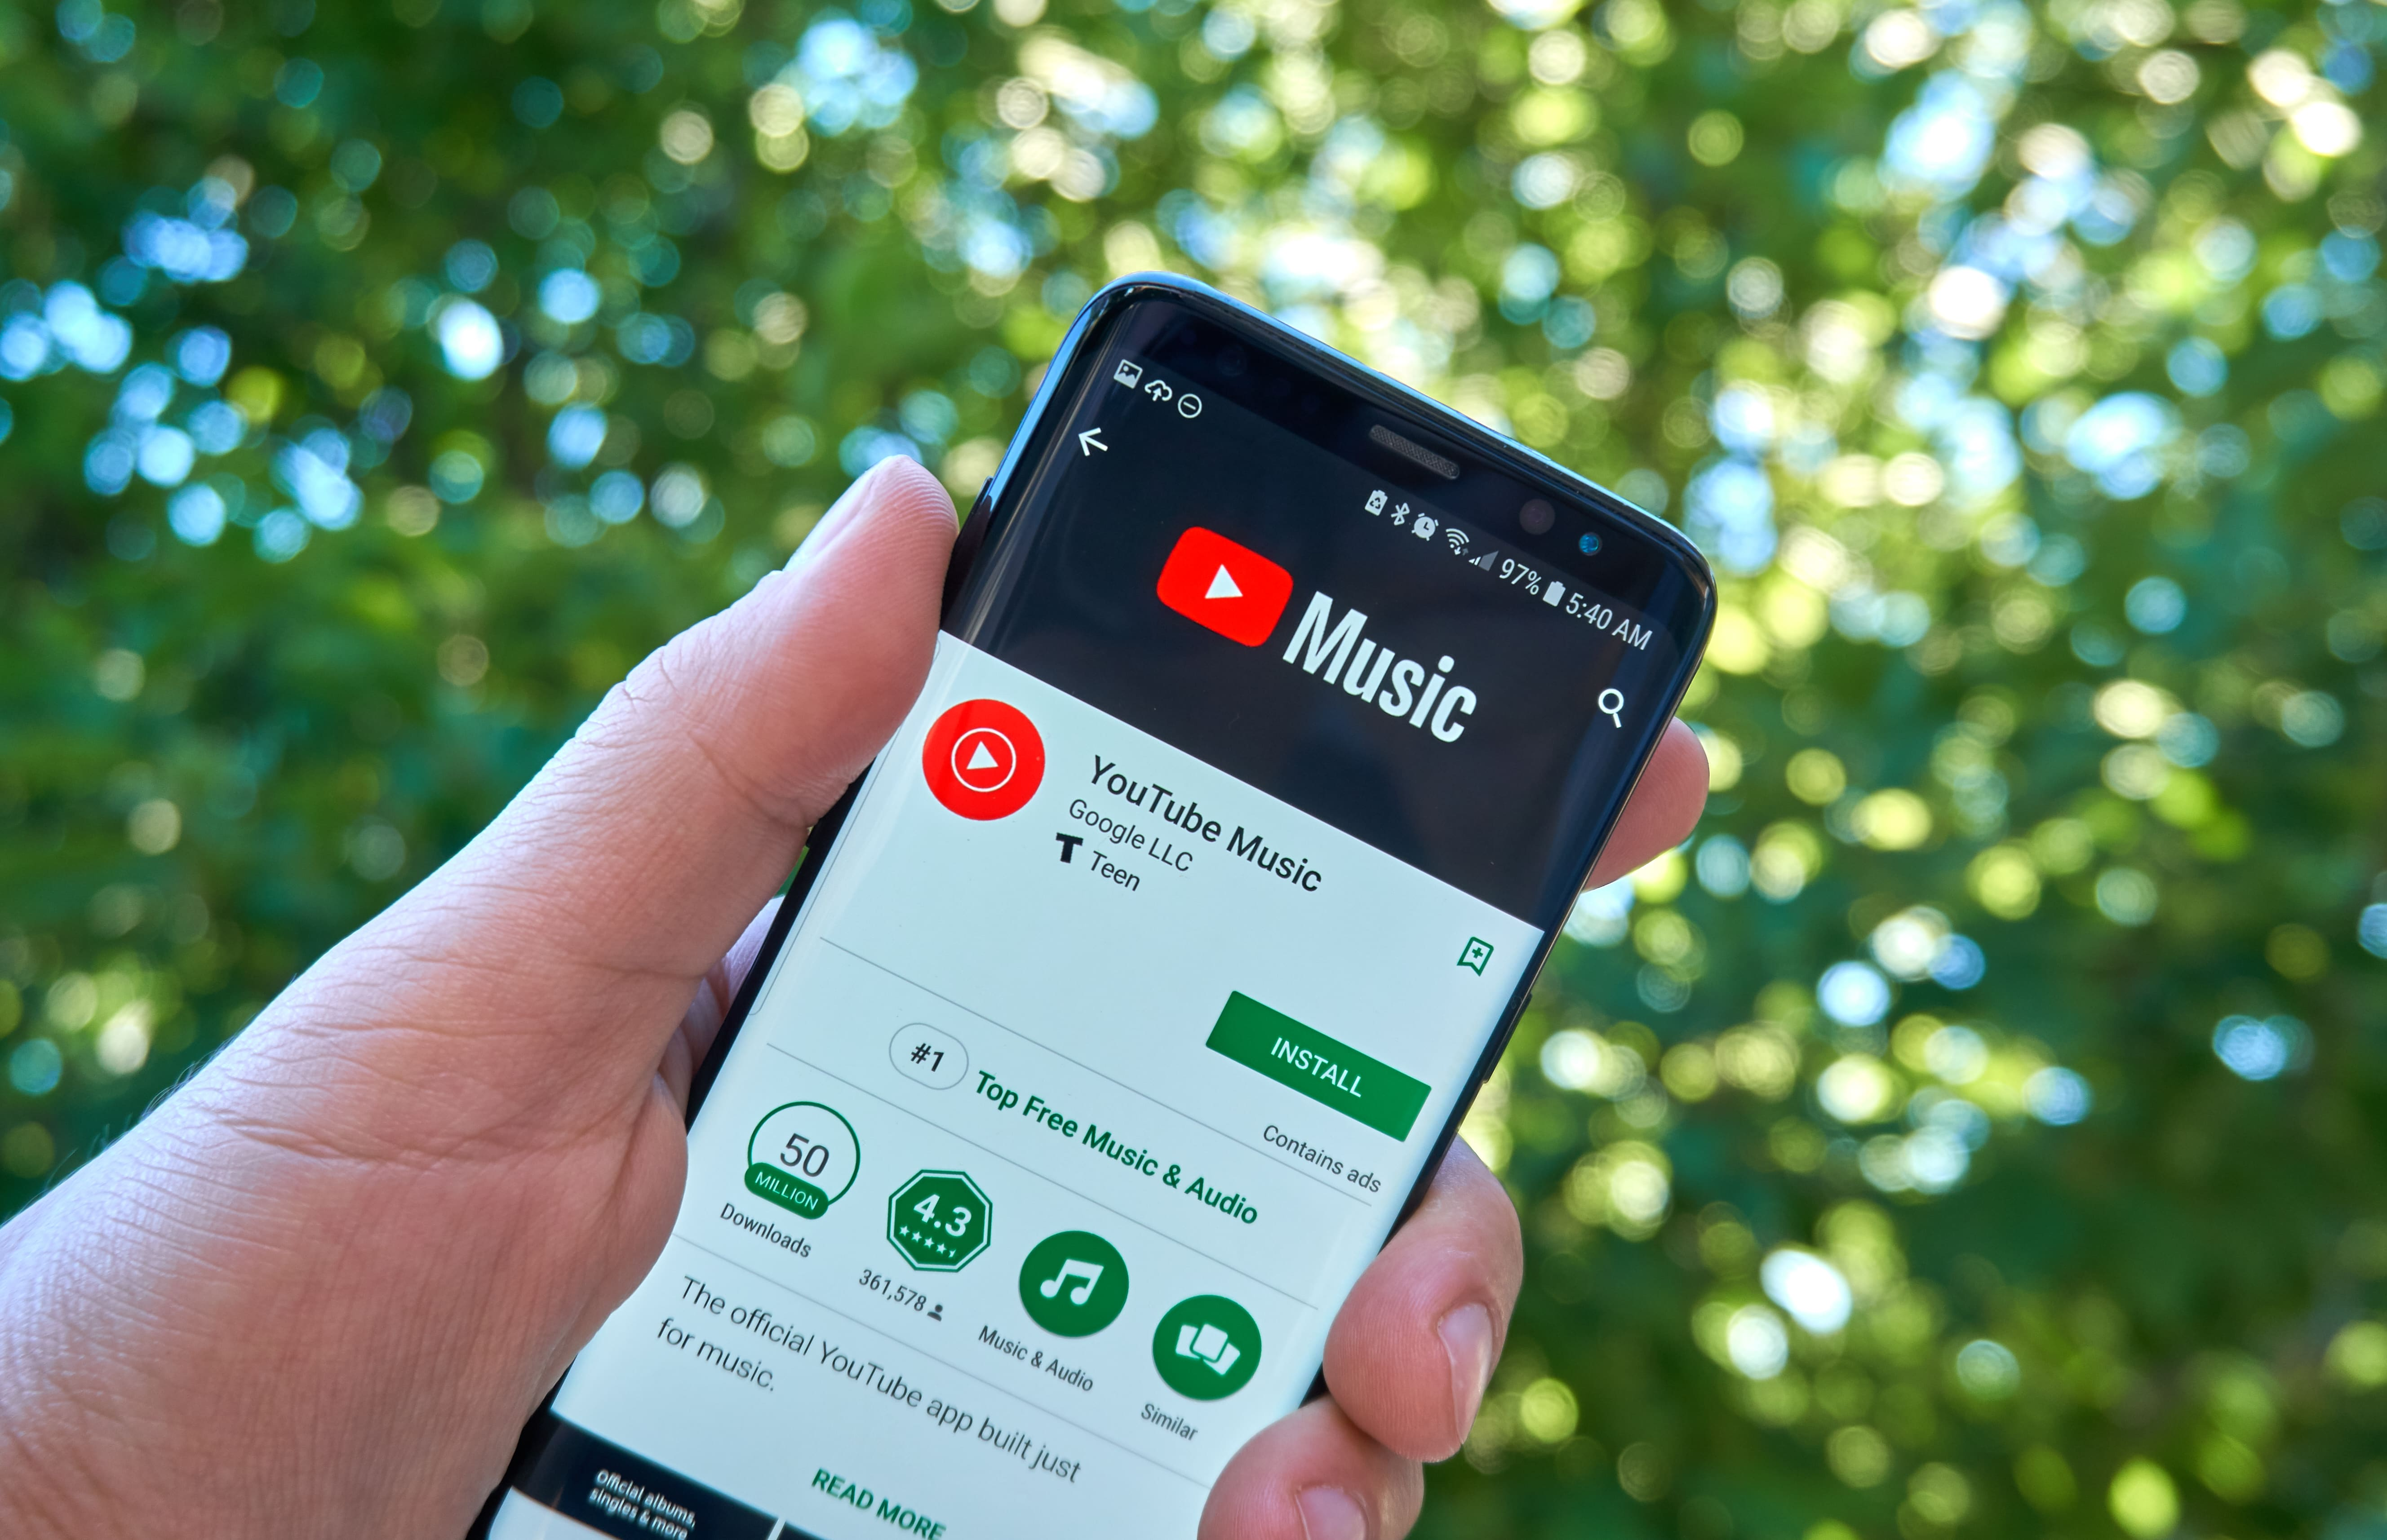 youtube-mena-launches-music-streaming-service